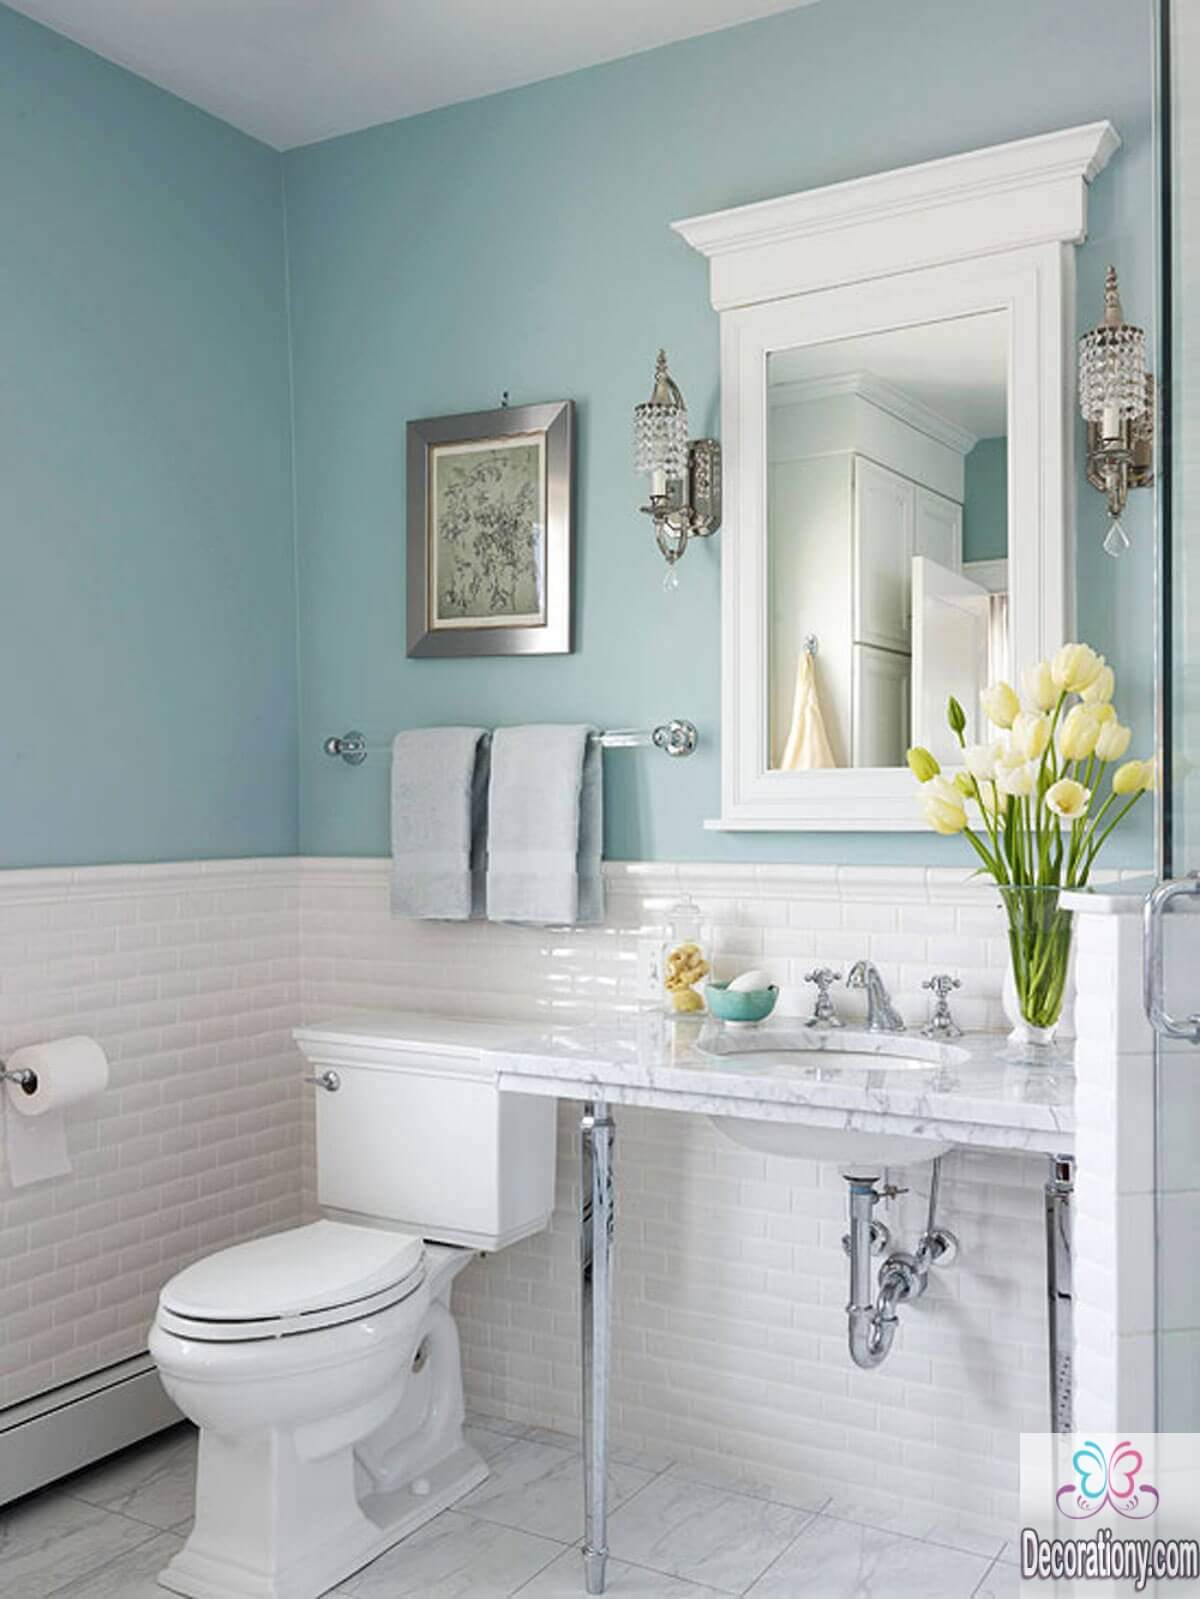 10 affordable colors for small bathrooms decoration y for Bathroom design for small bathrooms